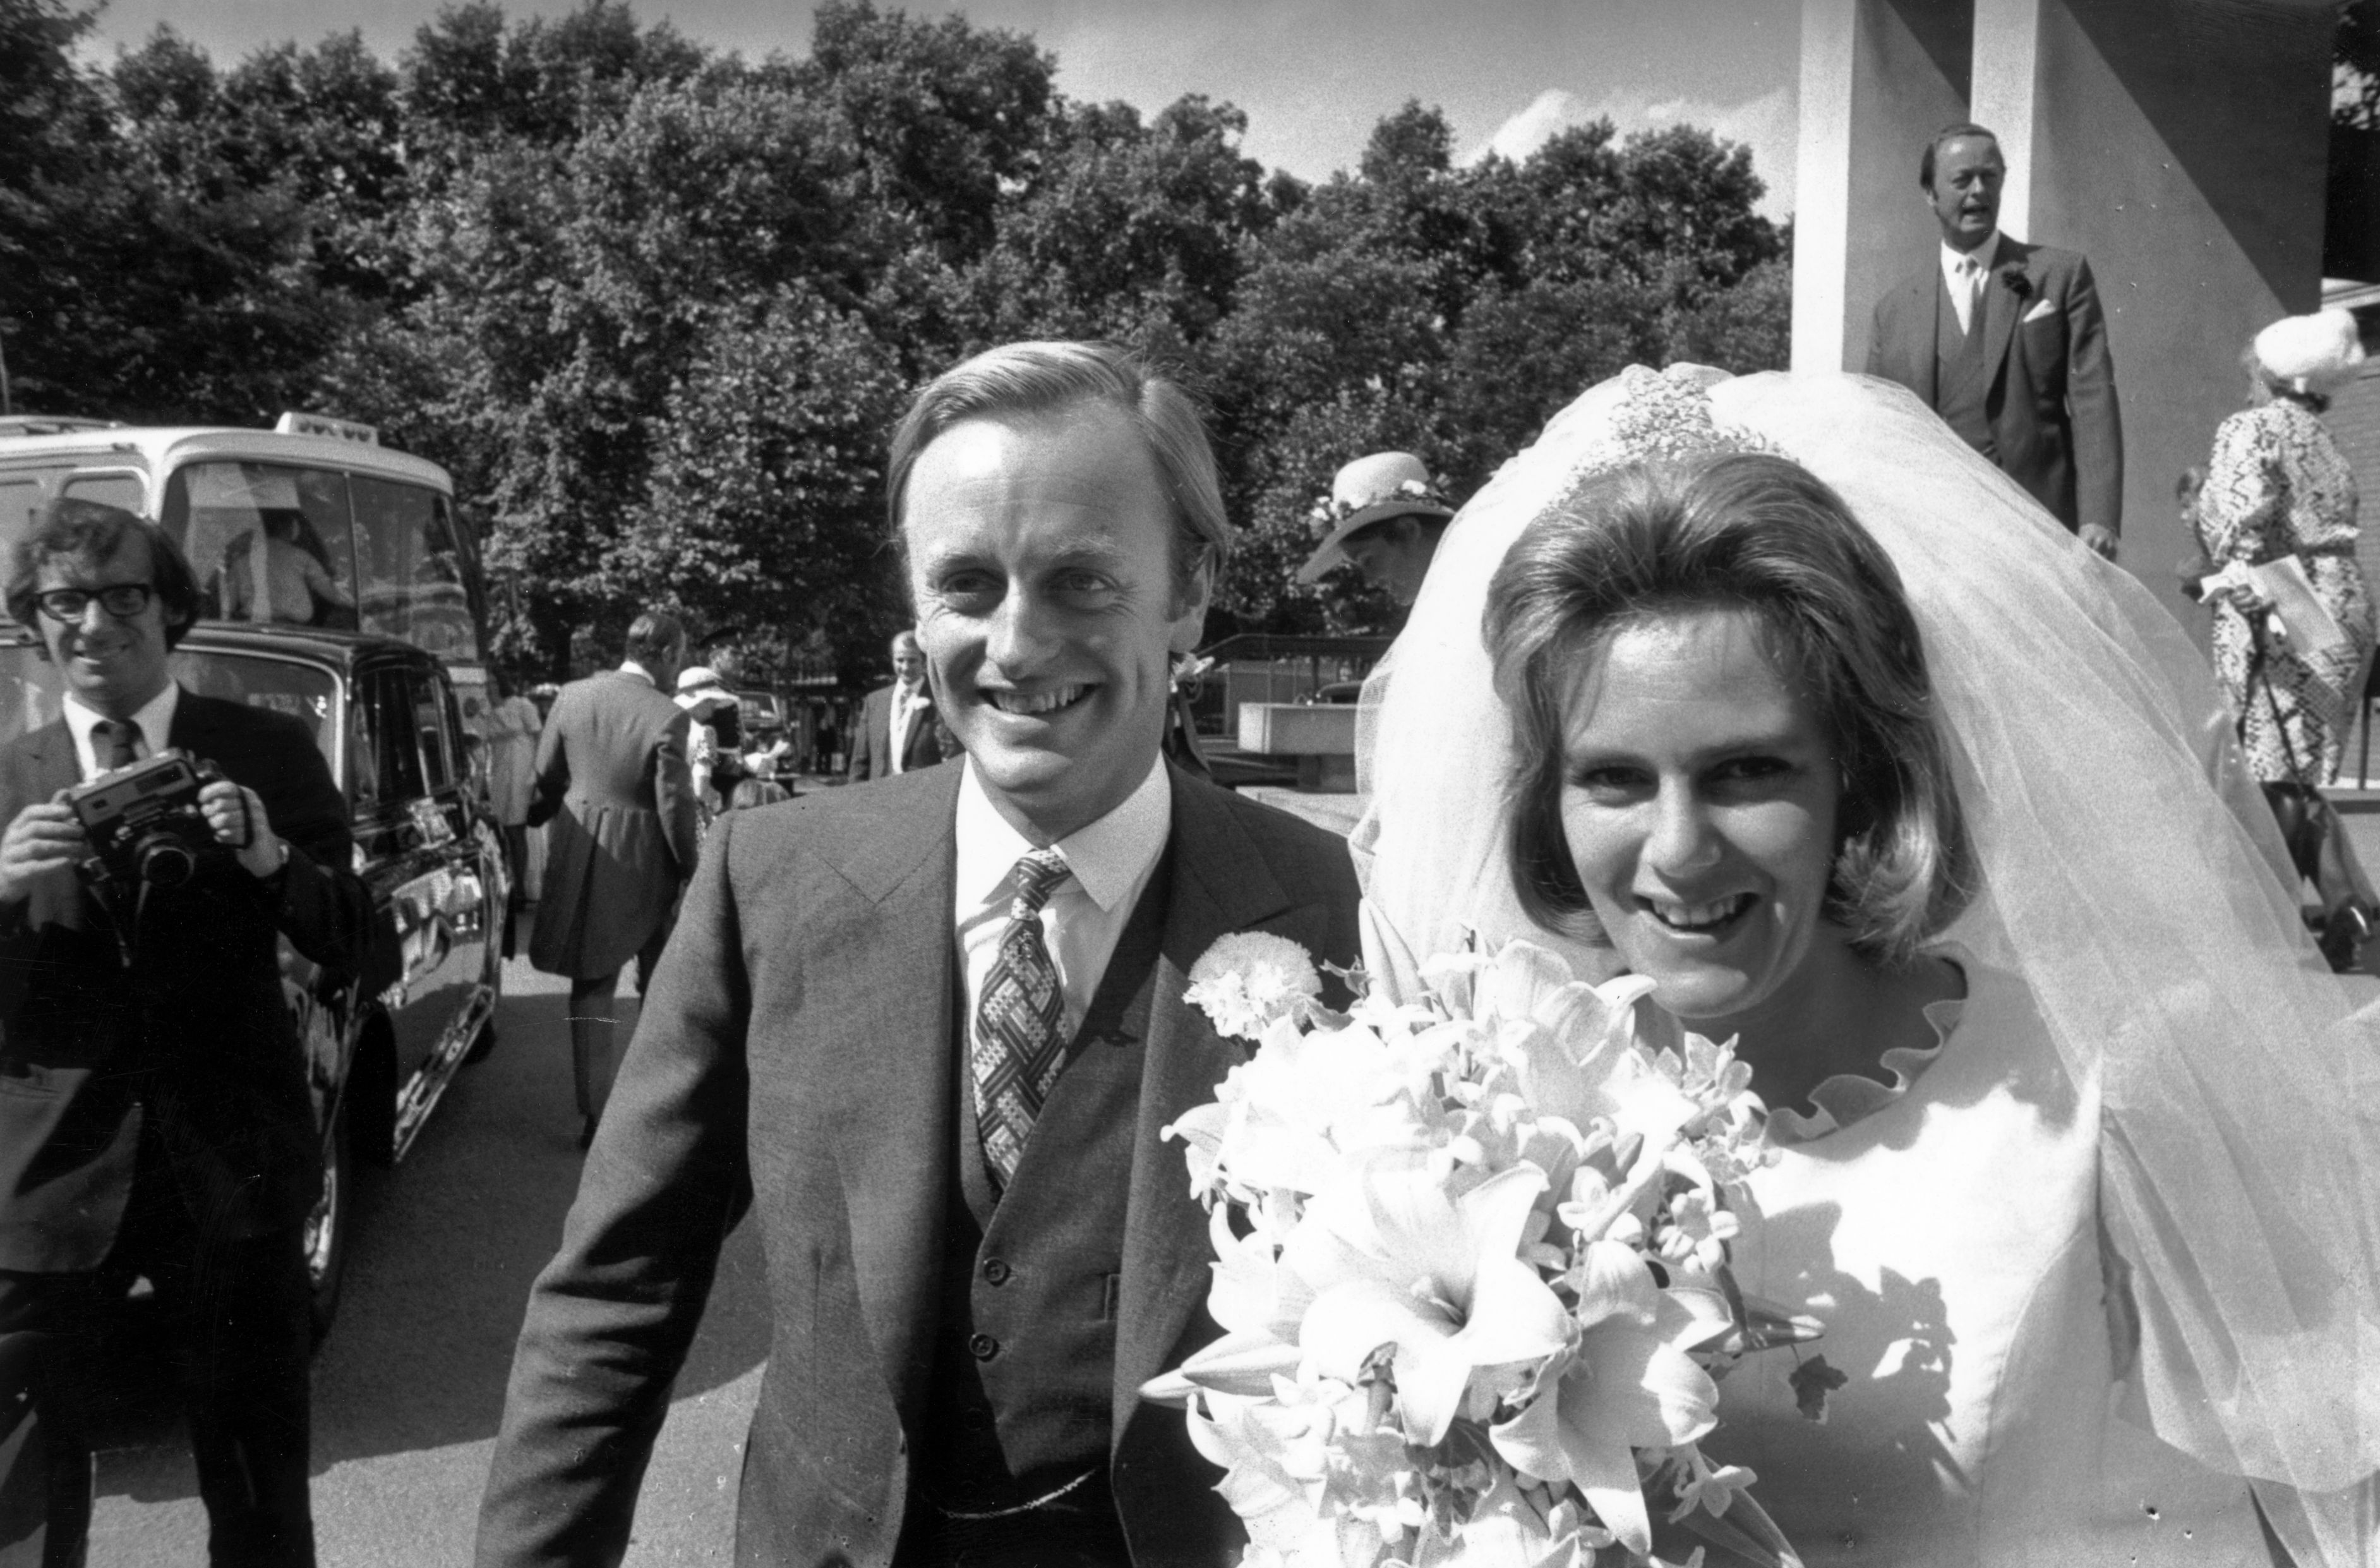 Camilla Shand and Captain Andrew Parker Bowles on their wedding day 4th July 1973   Source: Getty Images